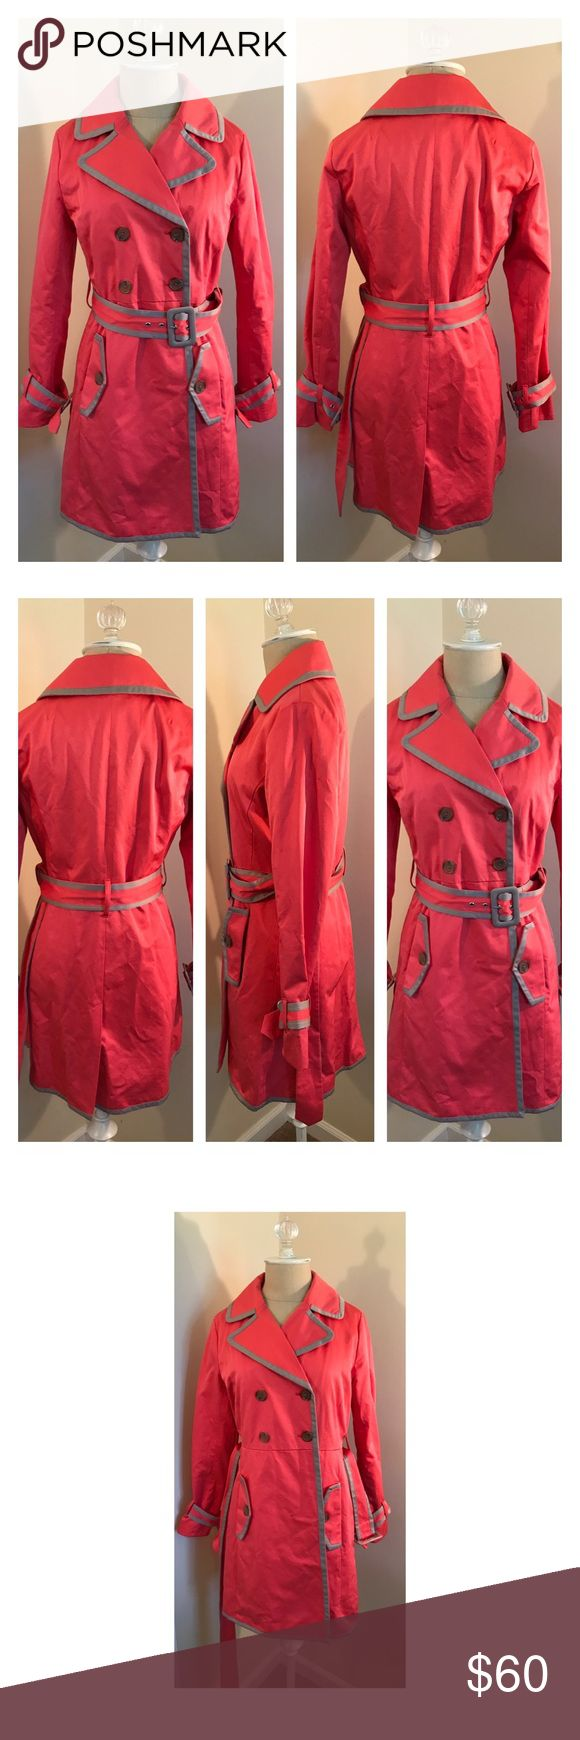 Banana Republic coral & taupe trench coat XS Banana Republic coral & taupe trench coat XS. Removable belt and wrist buckles. Lined. Like new. Banana Republic Jackets & Coats Trench Coats